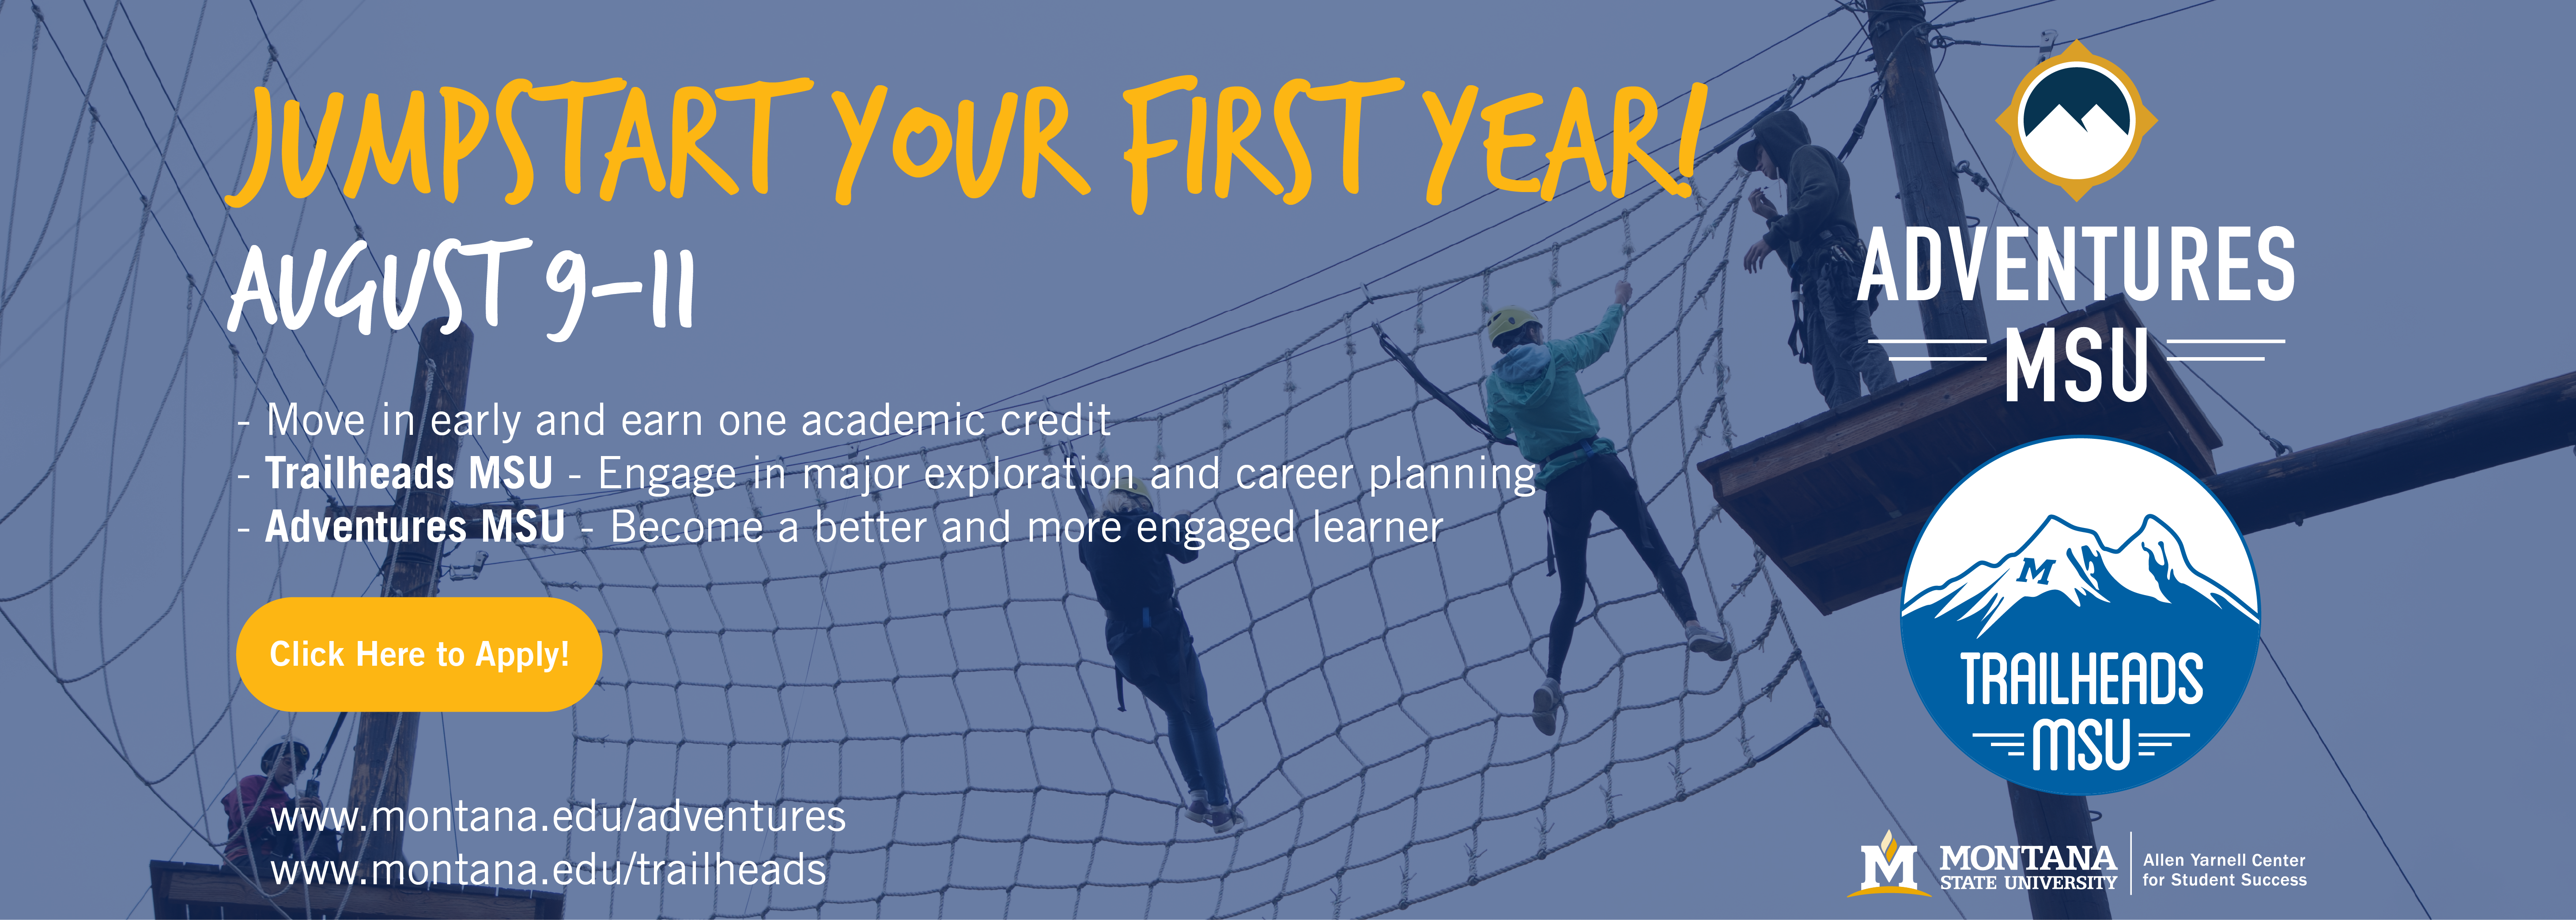 Jumpstart your first year! August 9-11 - Move in early and earn one academic credit - Trailhead's MSU - Engage in major exploration and career planning - Adventure's MSU - Become a better and more engaged learner Click here to Apply!